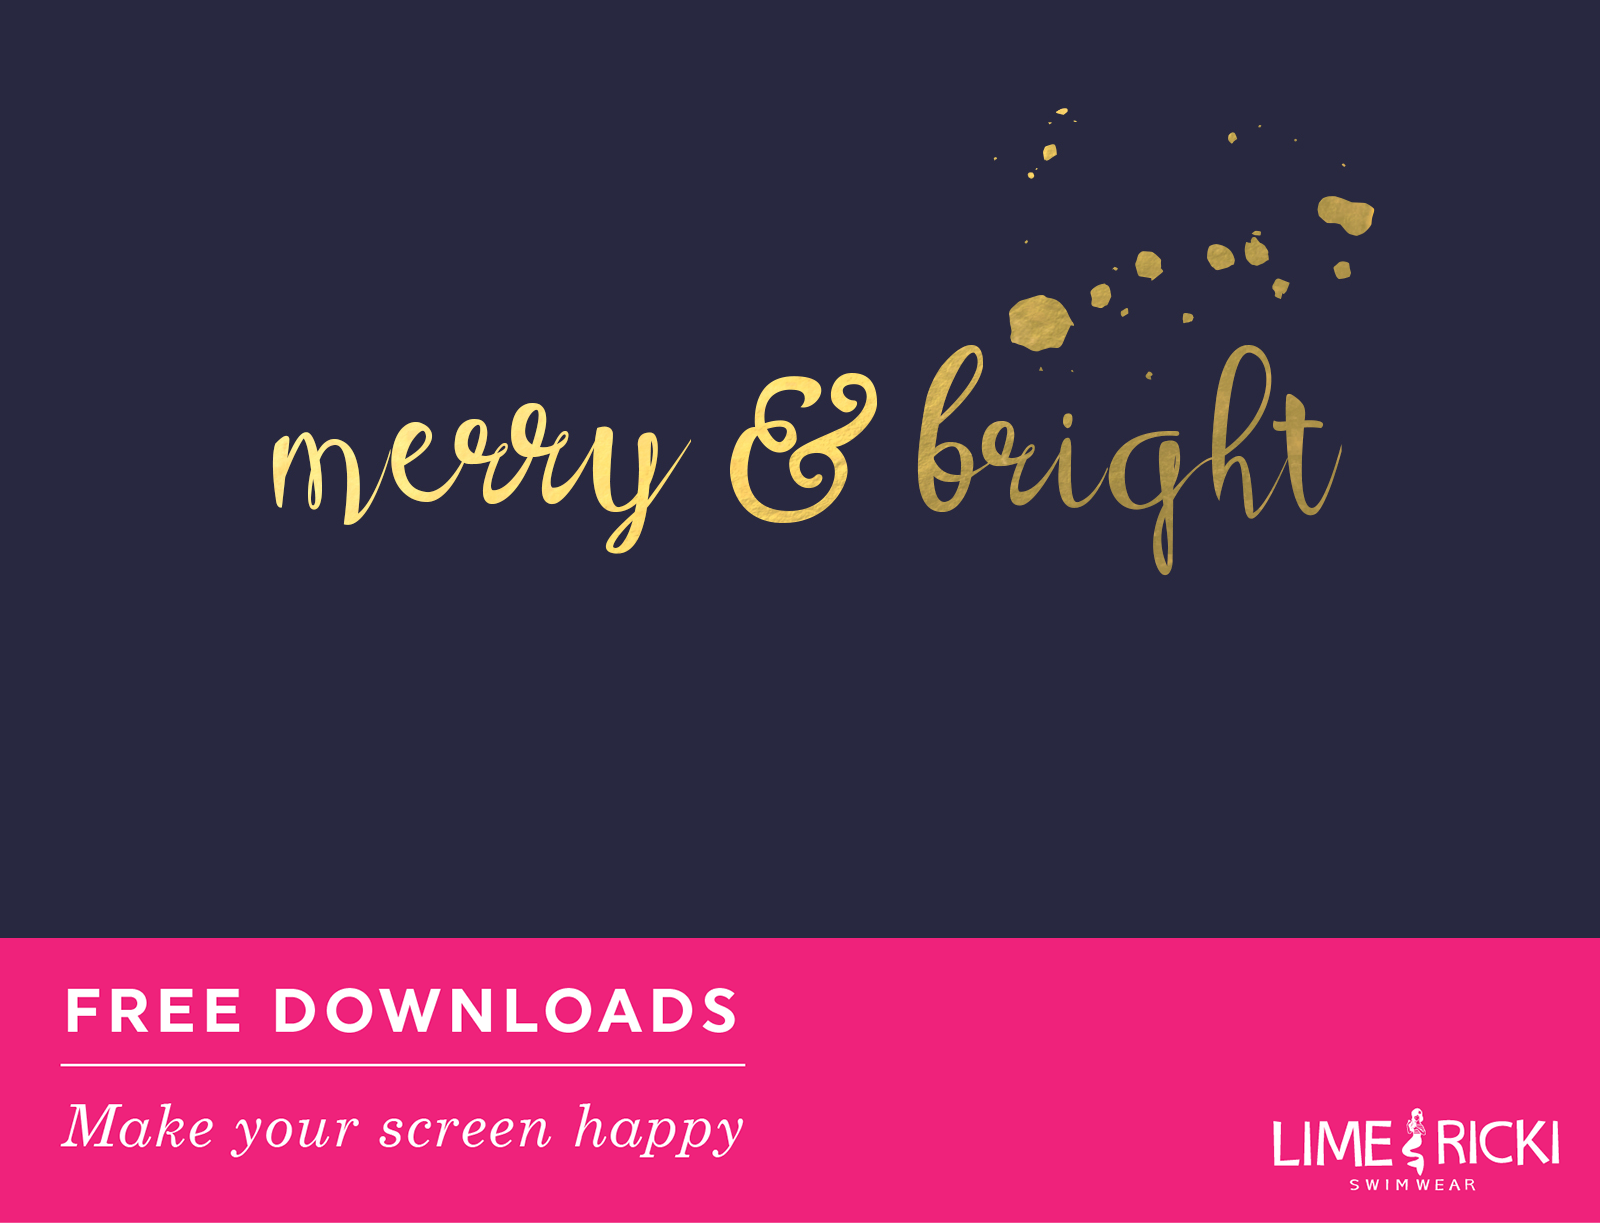 Merry and bright download